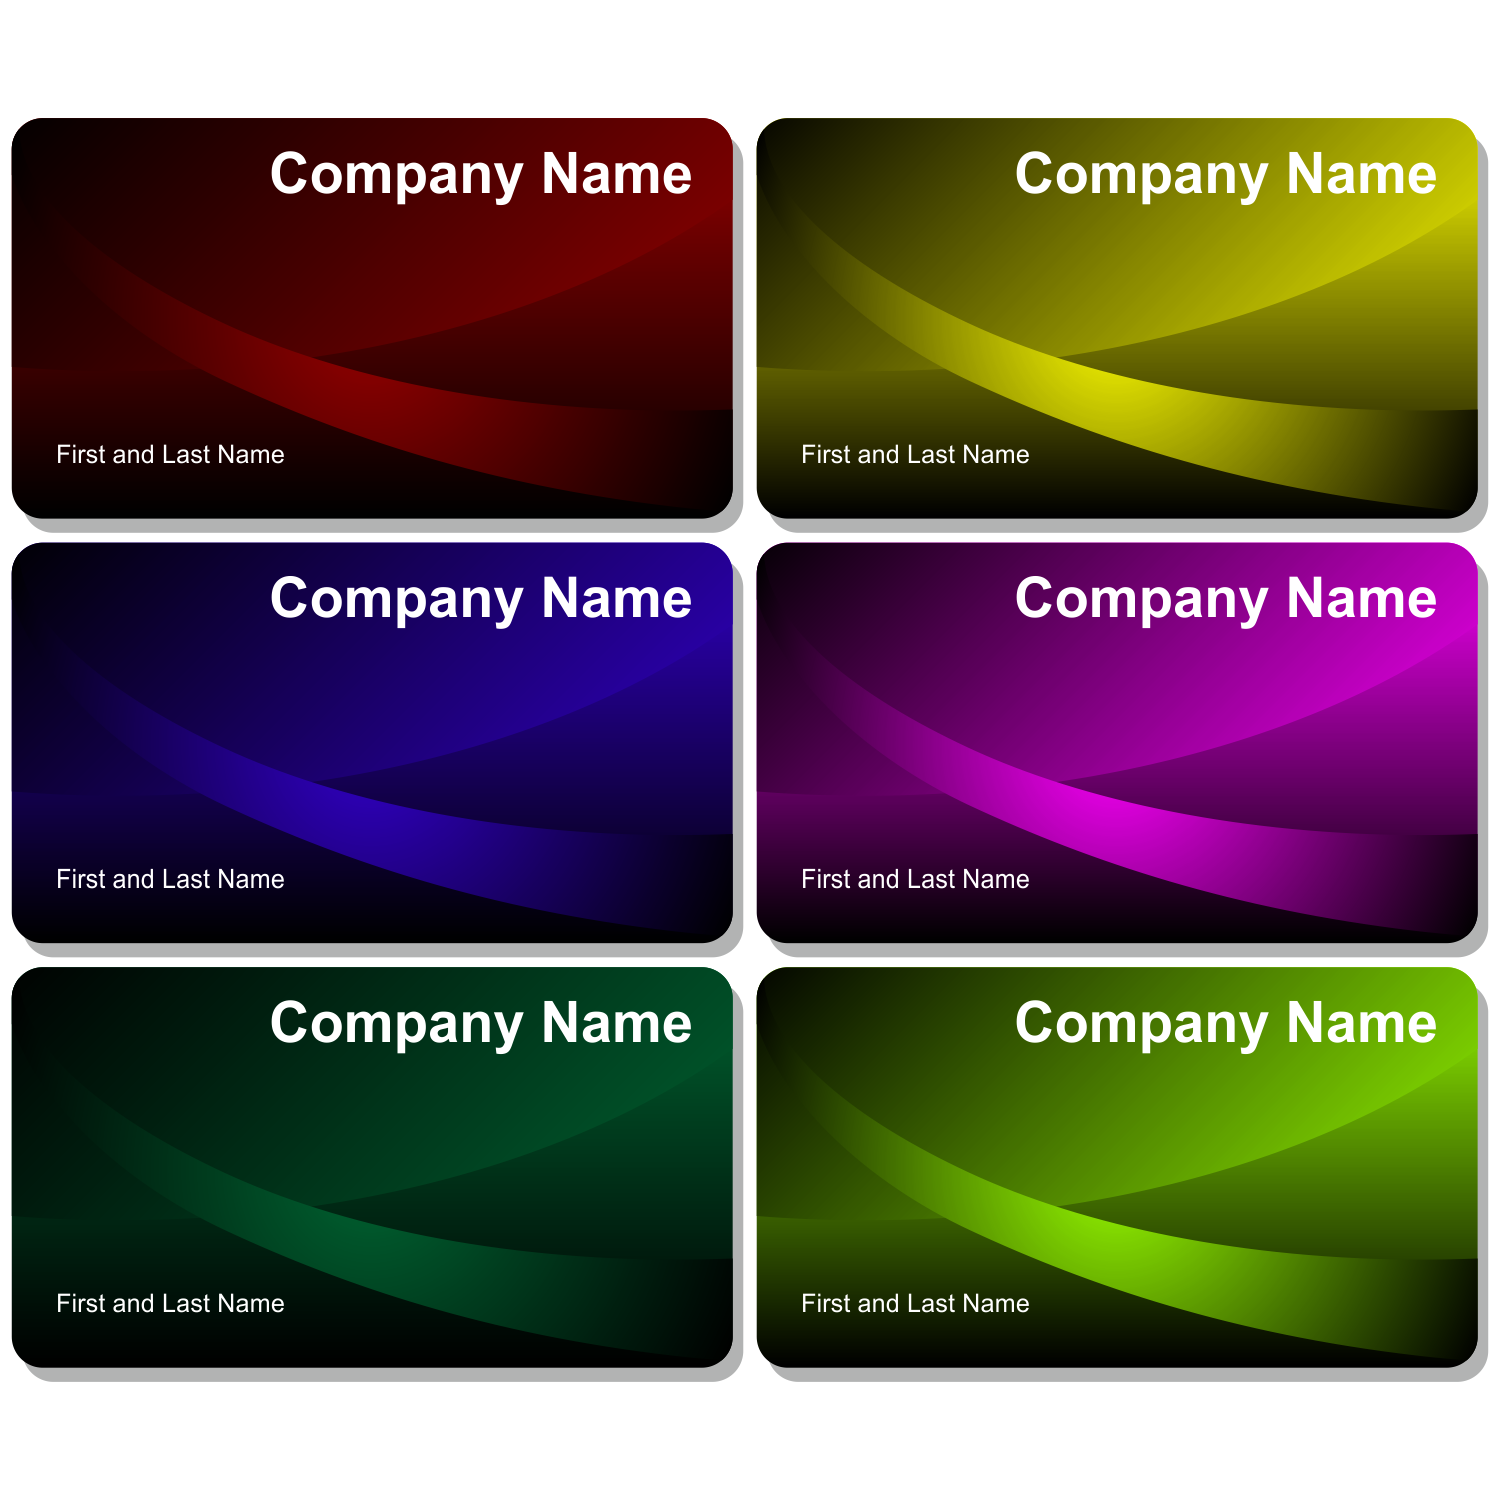 Download Free Vector Category Of Business Cards Page - Beautiful business card templates